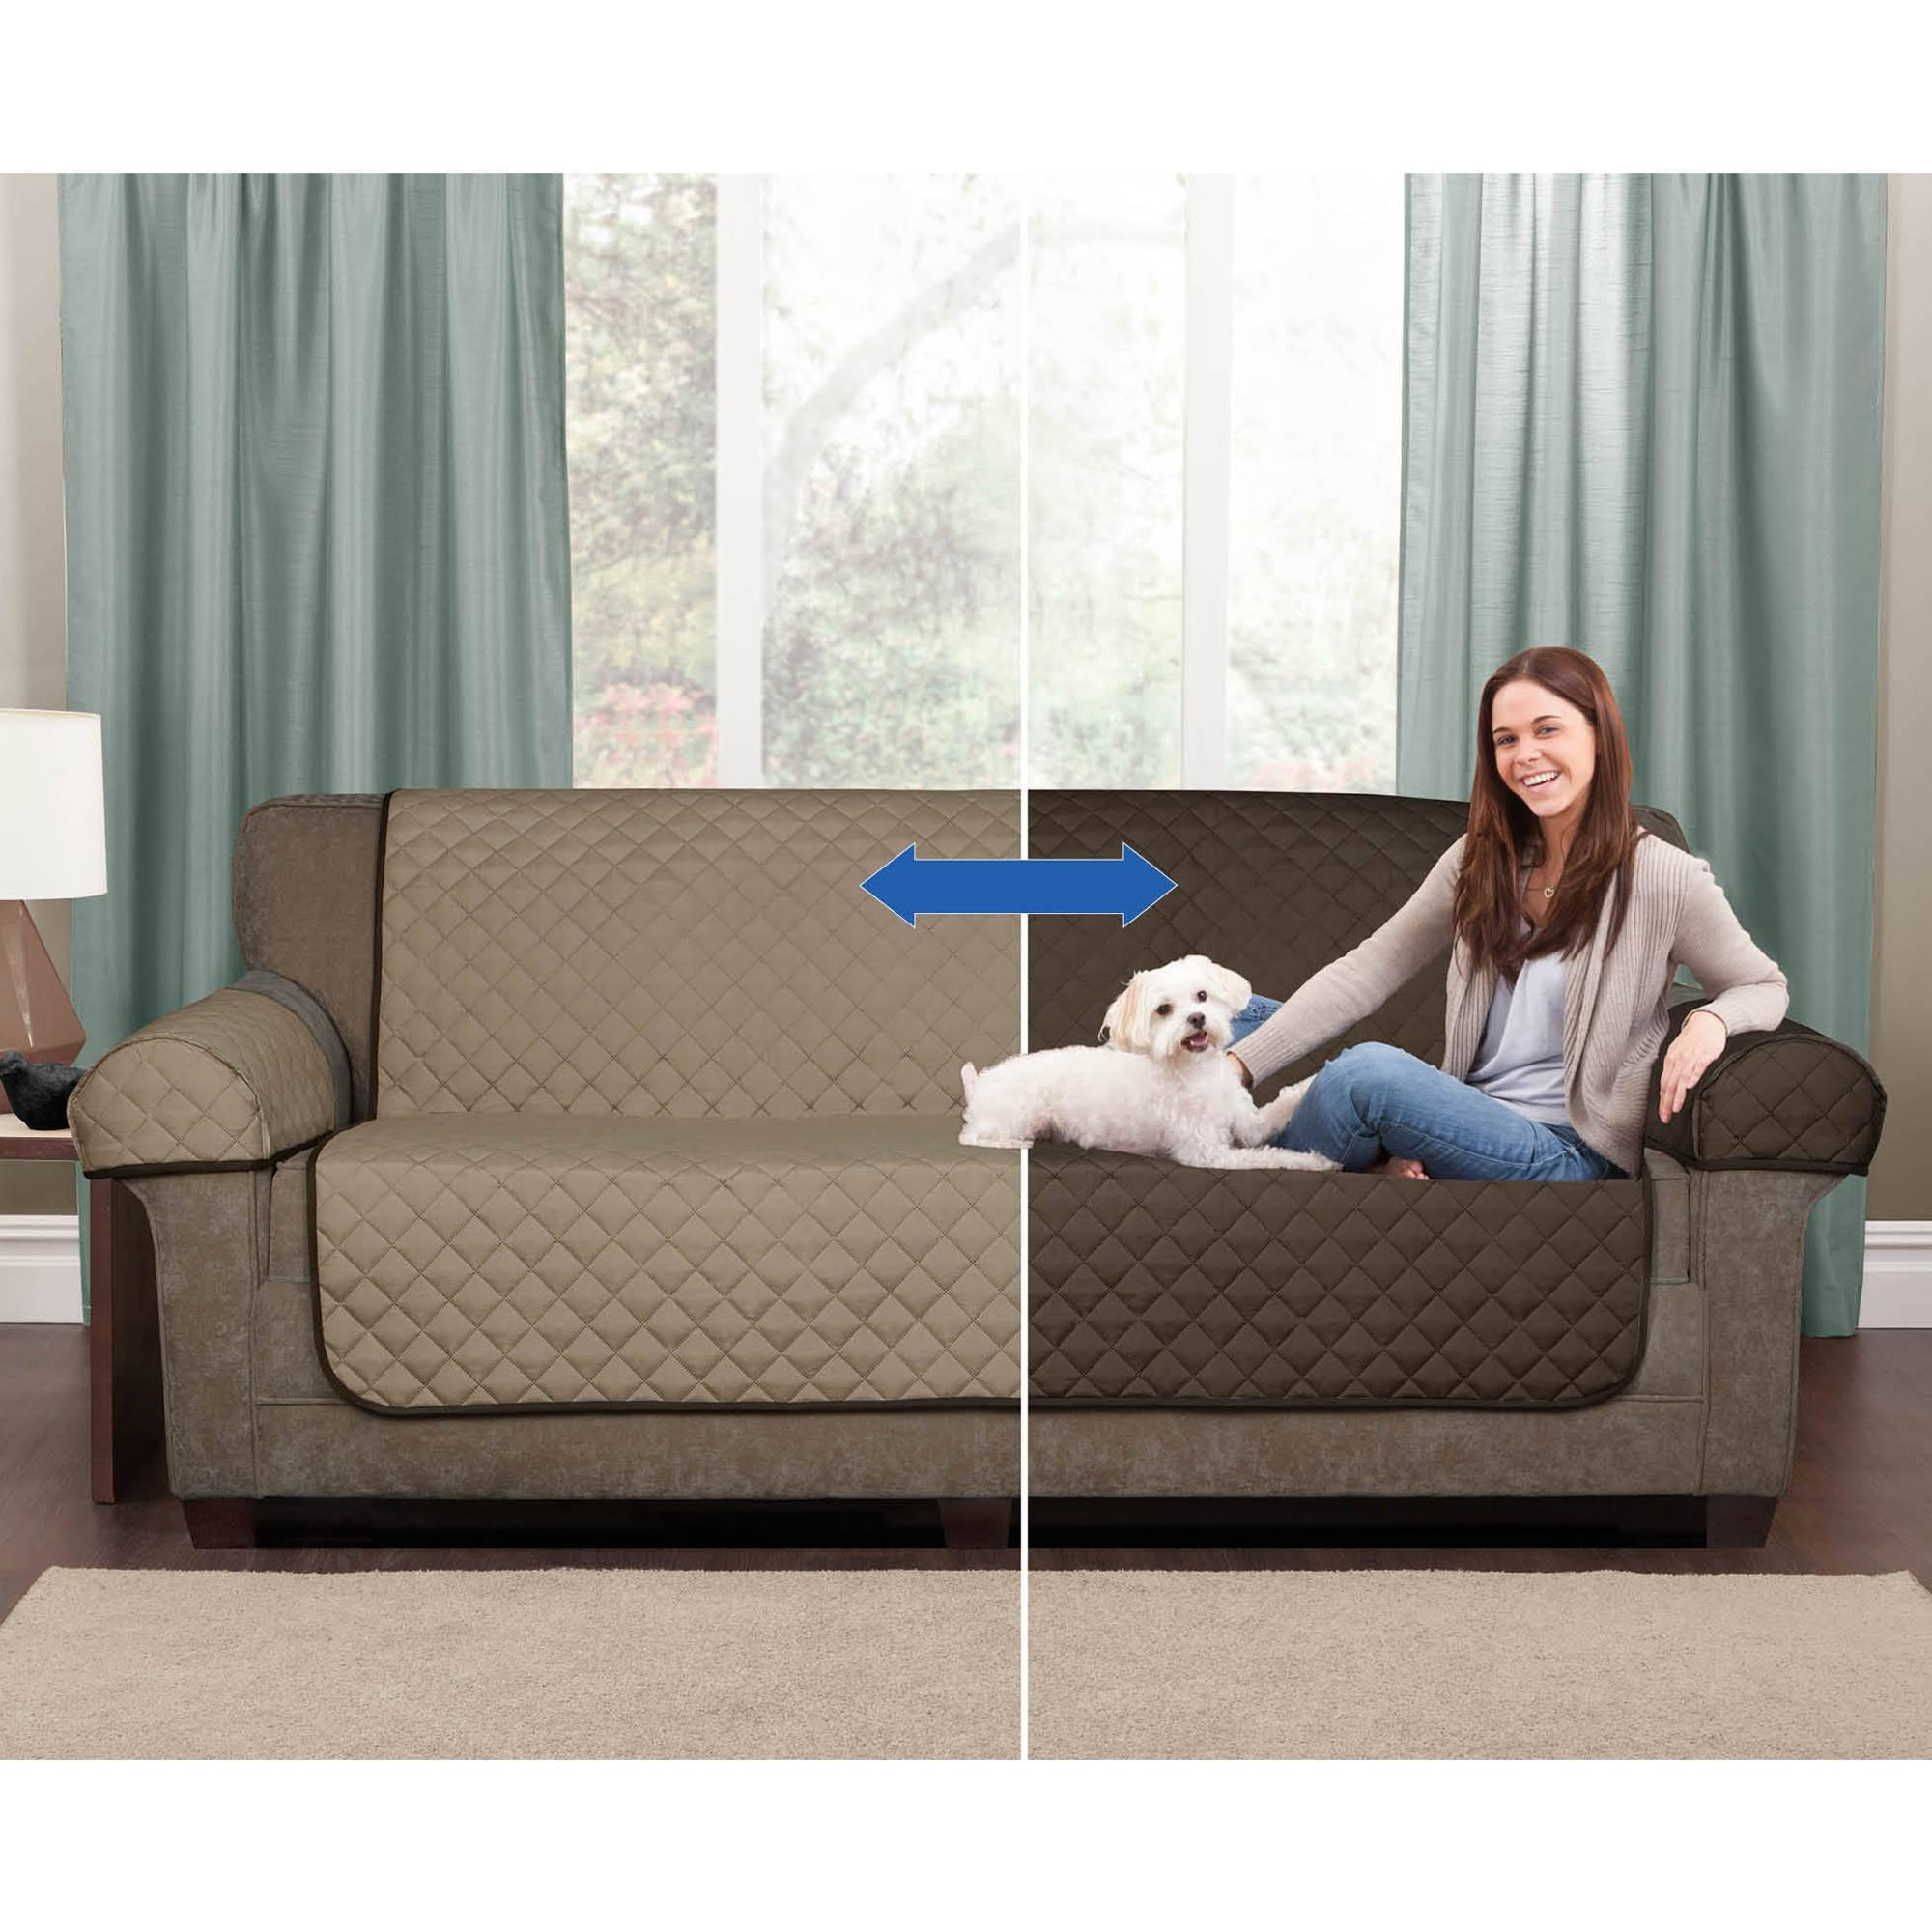 Mainstays Reversible Microfiber Fabric Pet/furniture Cover Within Covers For Sofas And Chairs (Image 13 of 20)